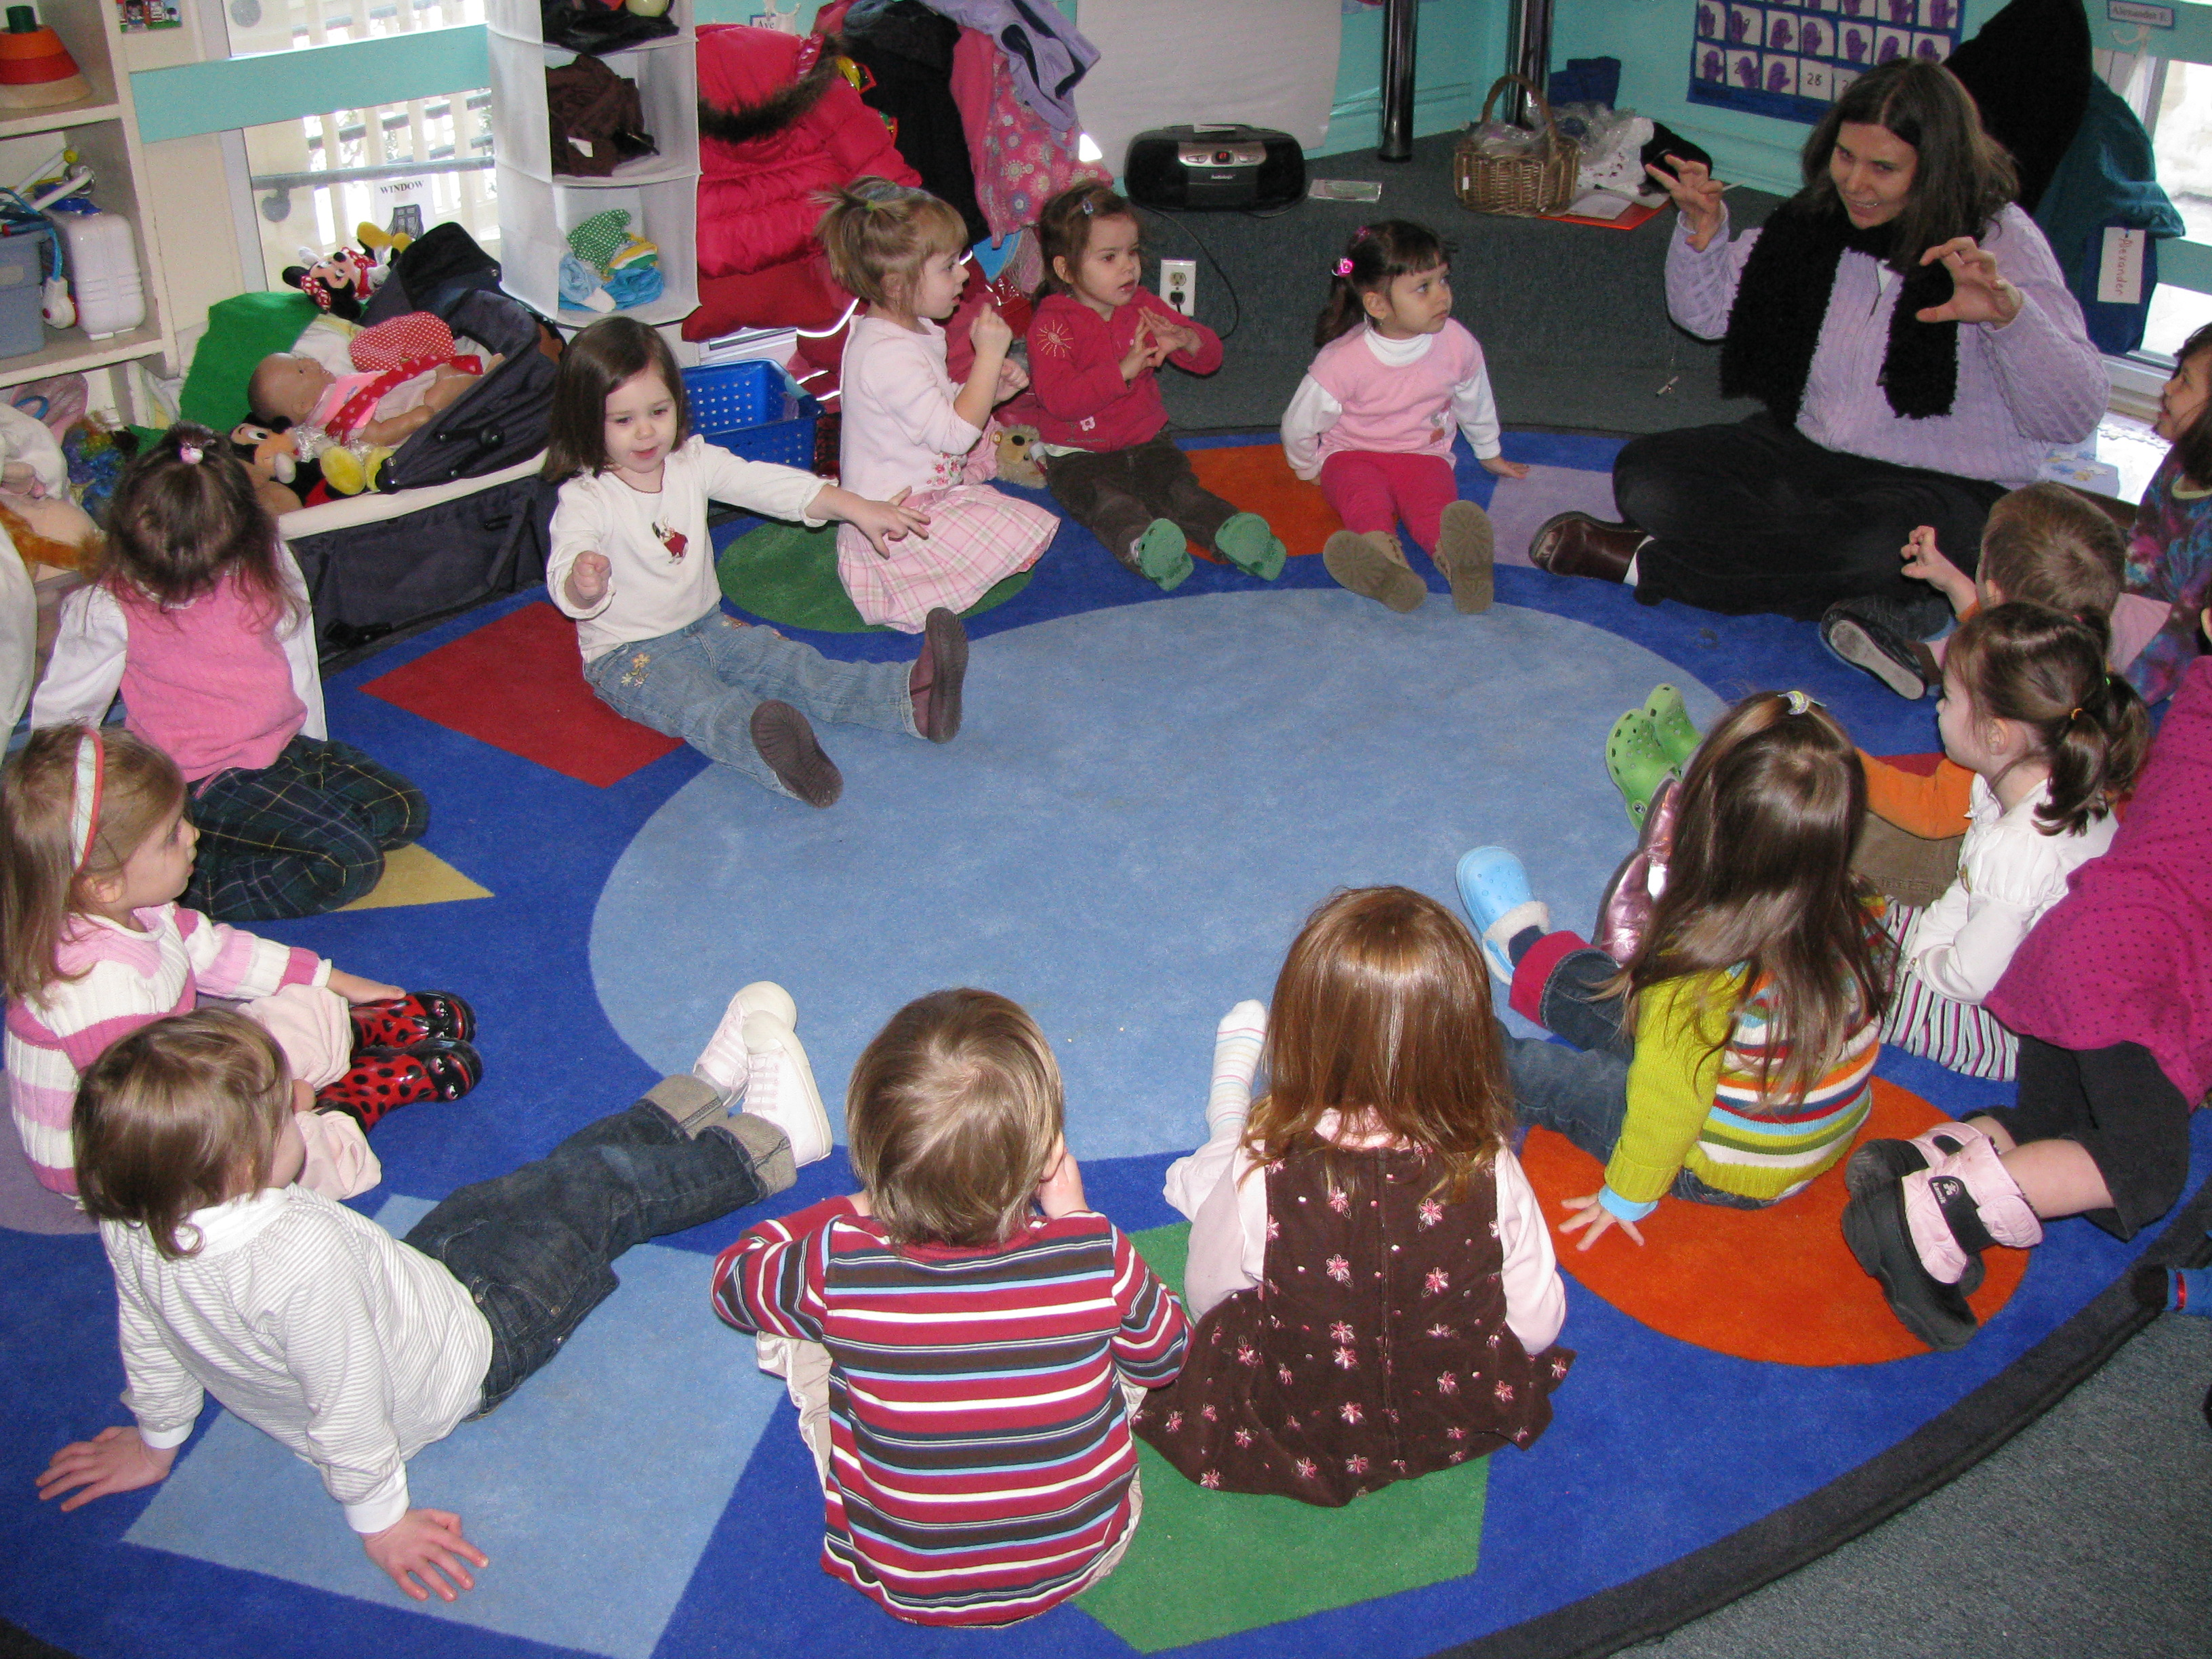 agassiz baldwin community circle time at preschool agassiz baldwin community. Black Bedroom Furniture Sets. Home Design Ideas